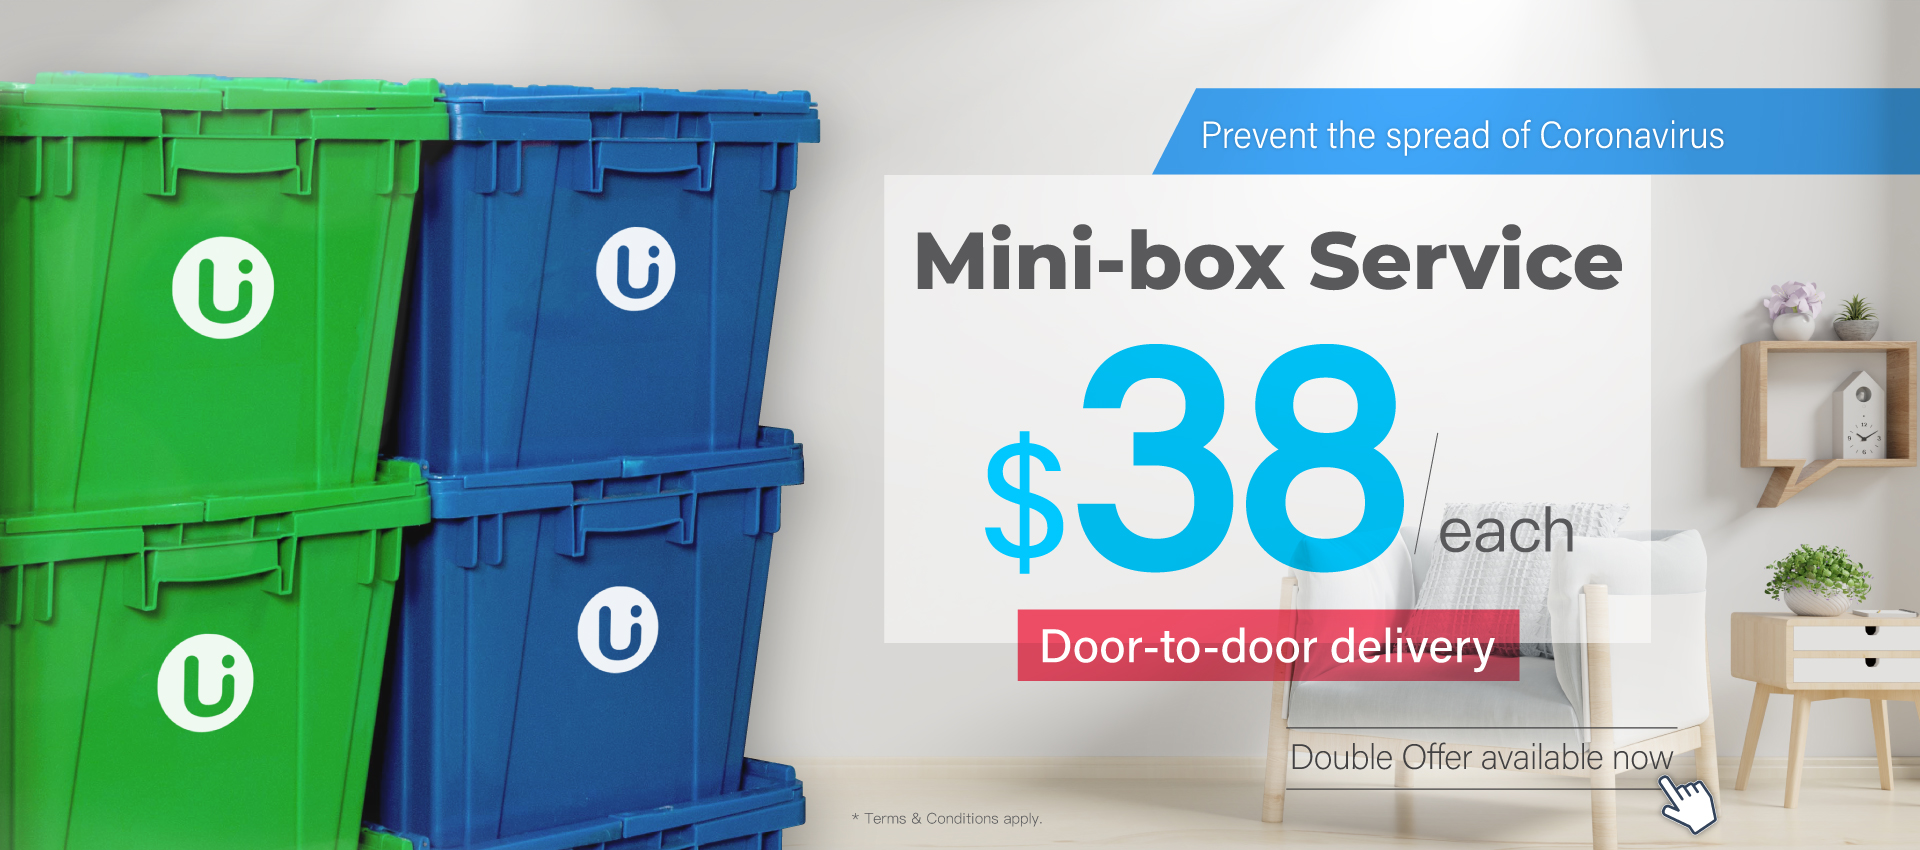 U SPACE Mini-box Service will deliver your items to your home upon your storing and collecting requests. A Double Offer is now available upon service application!